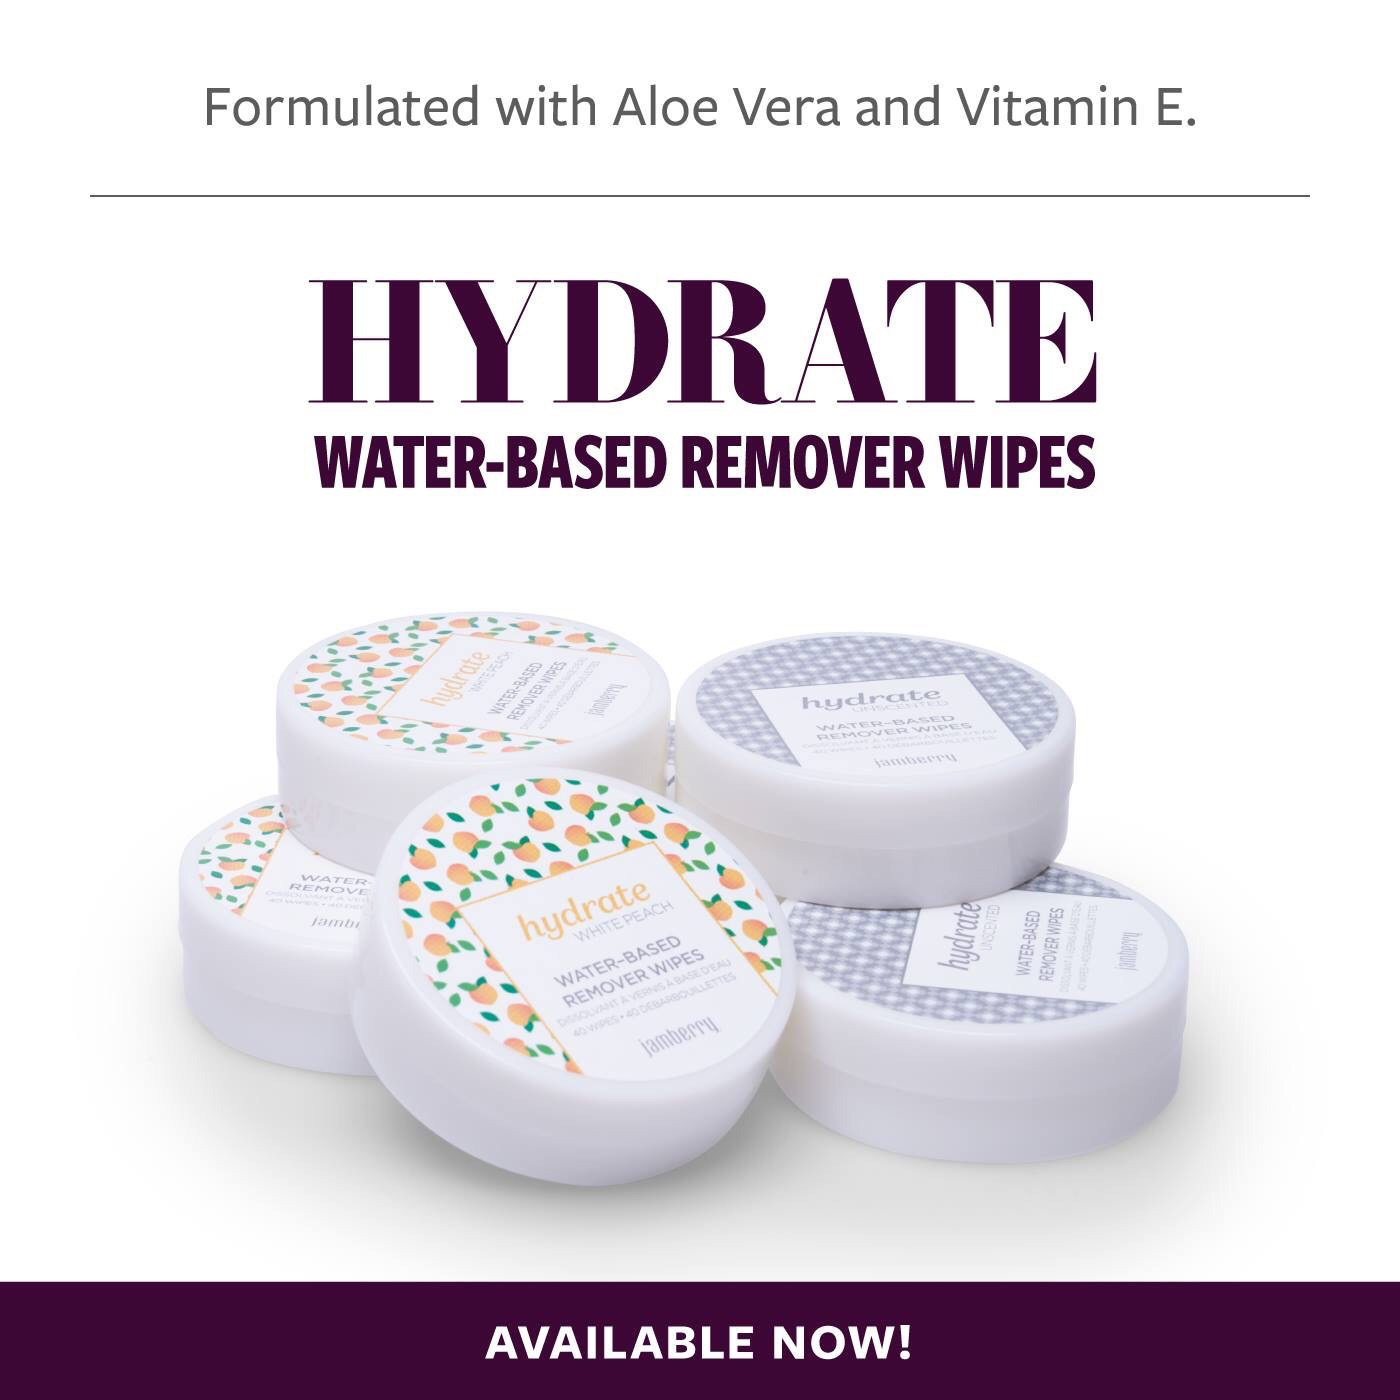 Hydrate Water-Based Remover Wipes  – Available Now